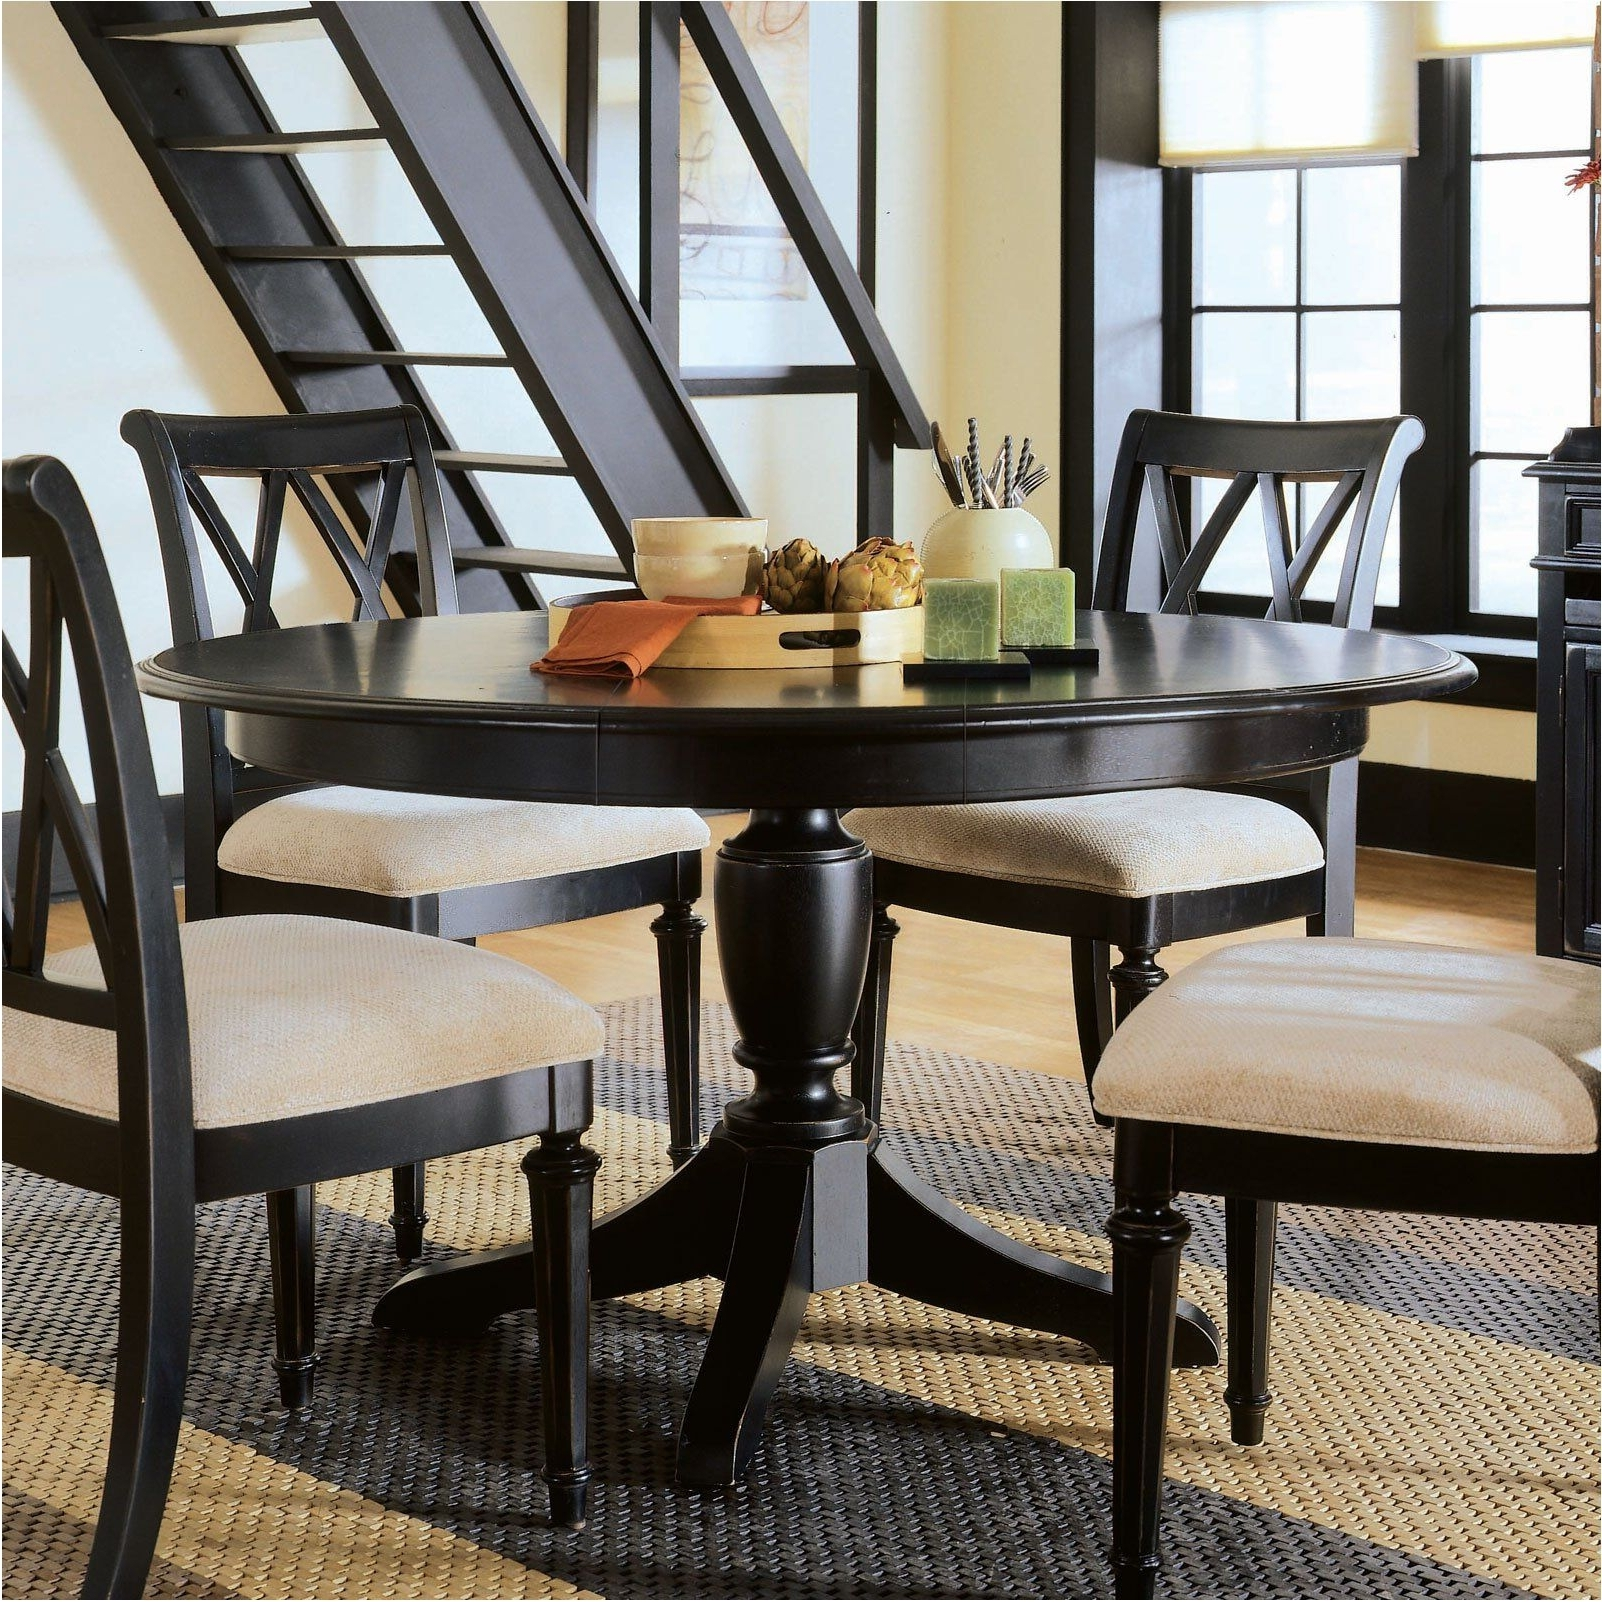 Dark Round Dining Tables With Most Recent Extraordinary Dark Wood Round Dining Table : Table (View 23 of 25)